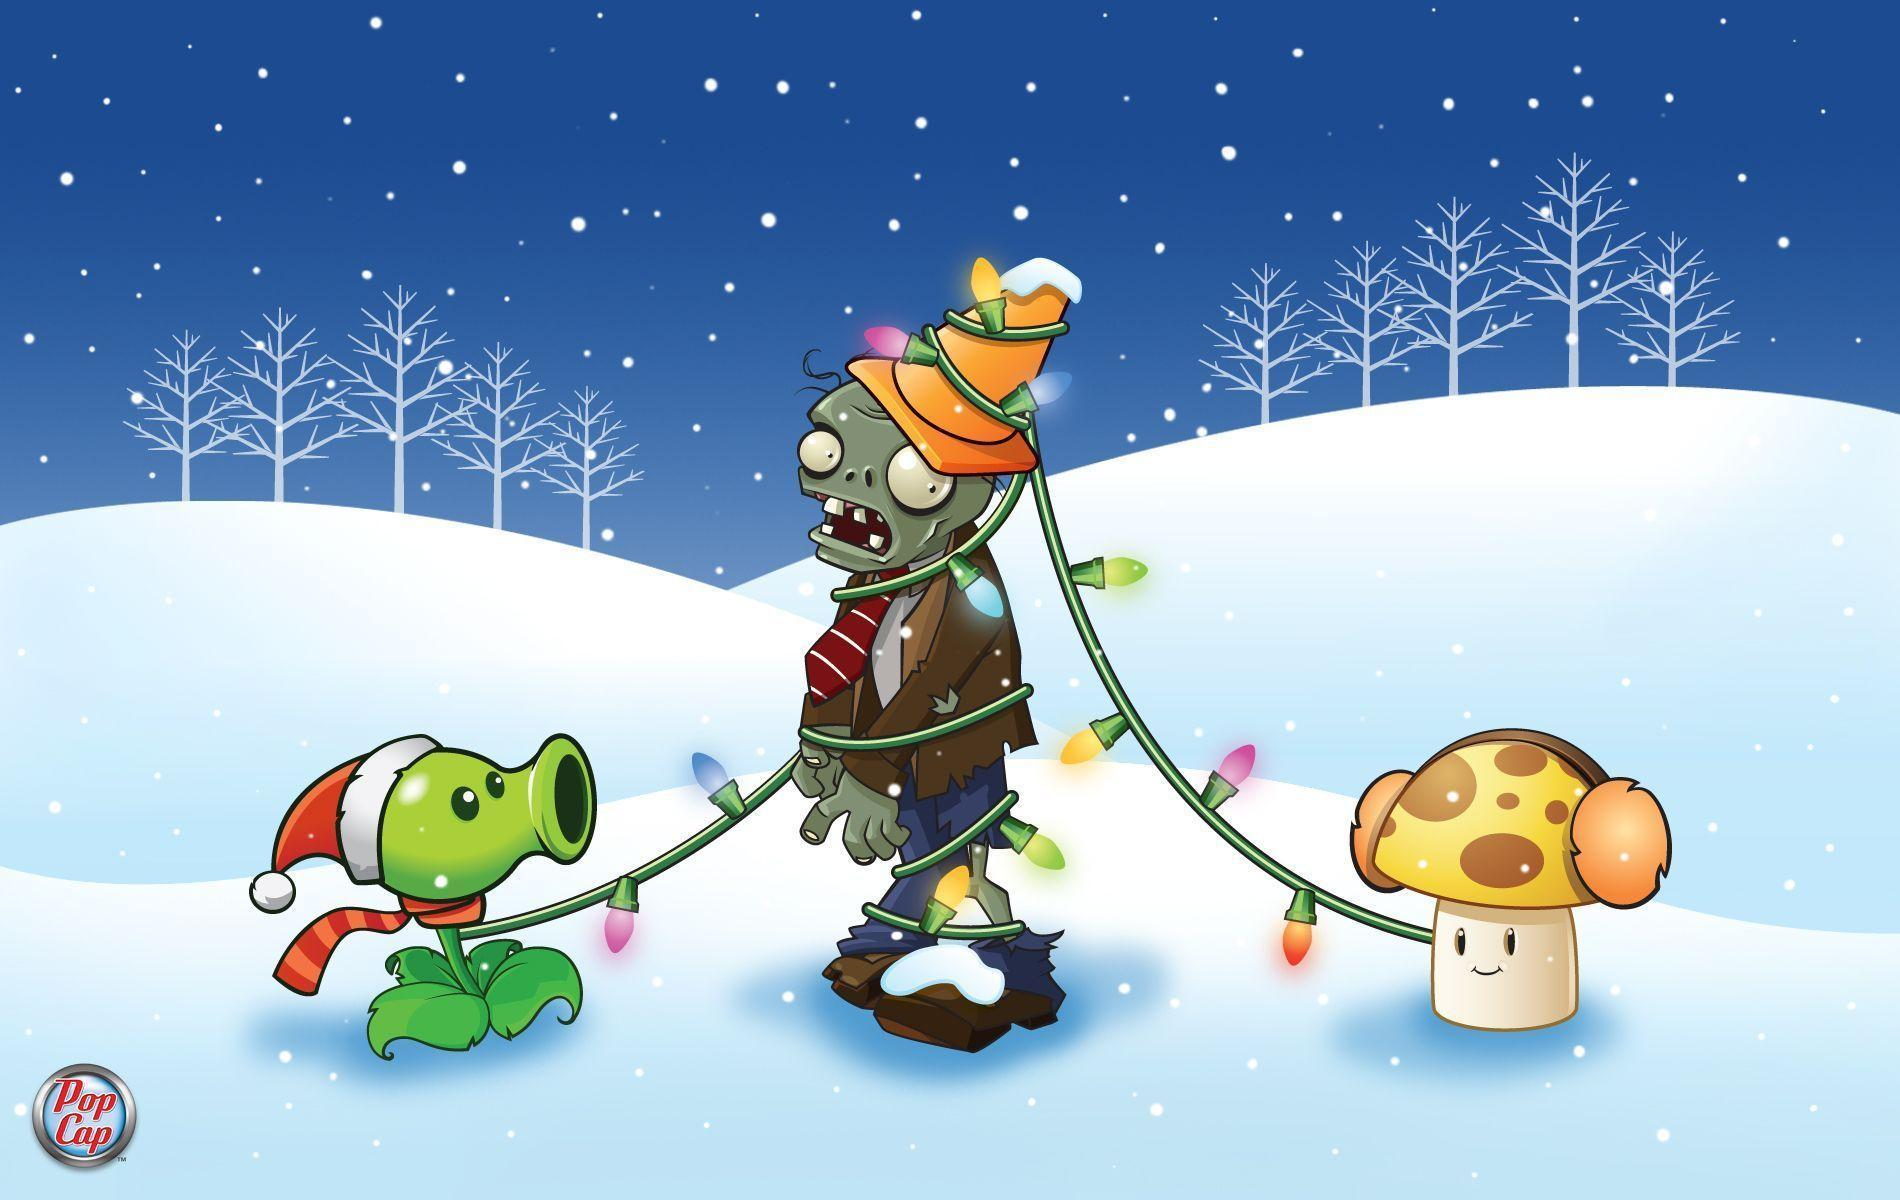 Would you like a Plants vs. Zombies Christmas wallpaper? - Ironhammers